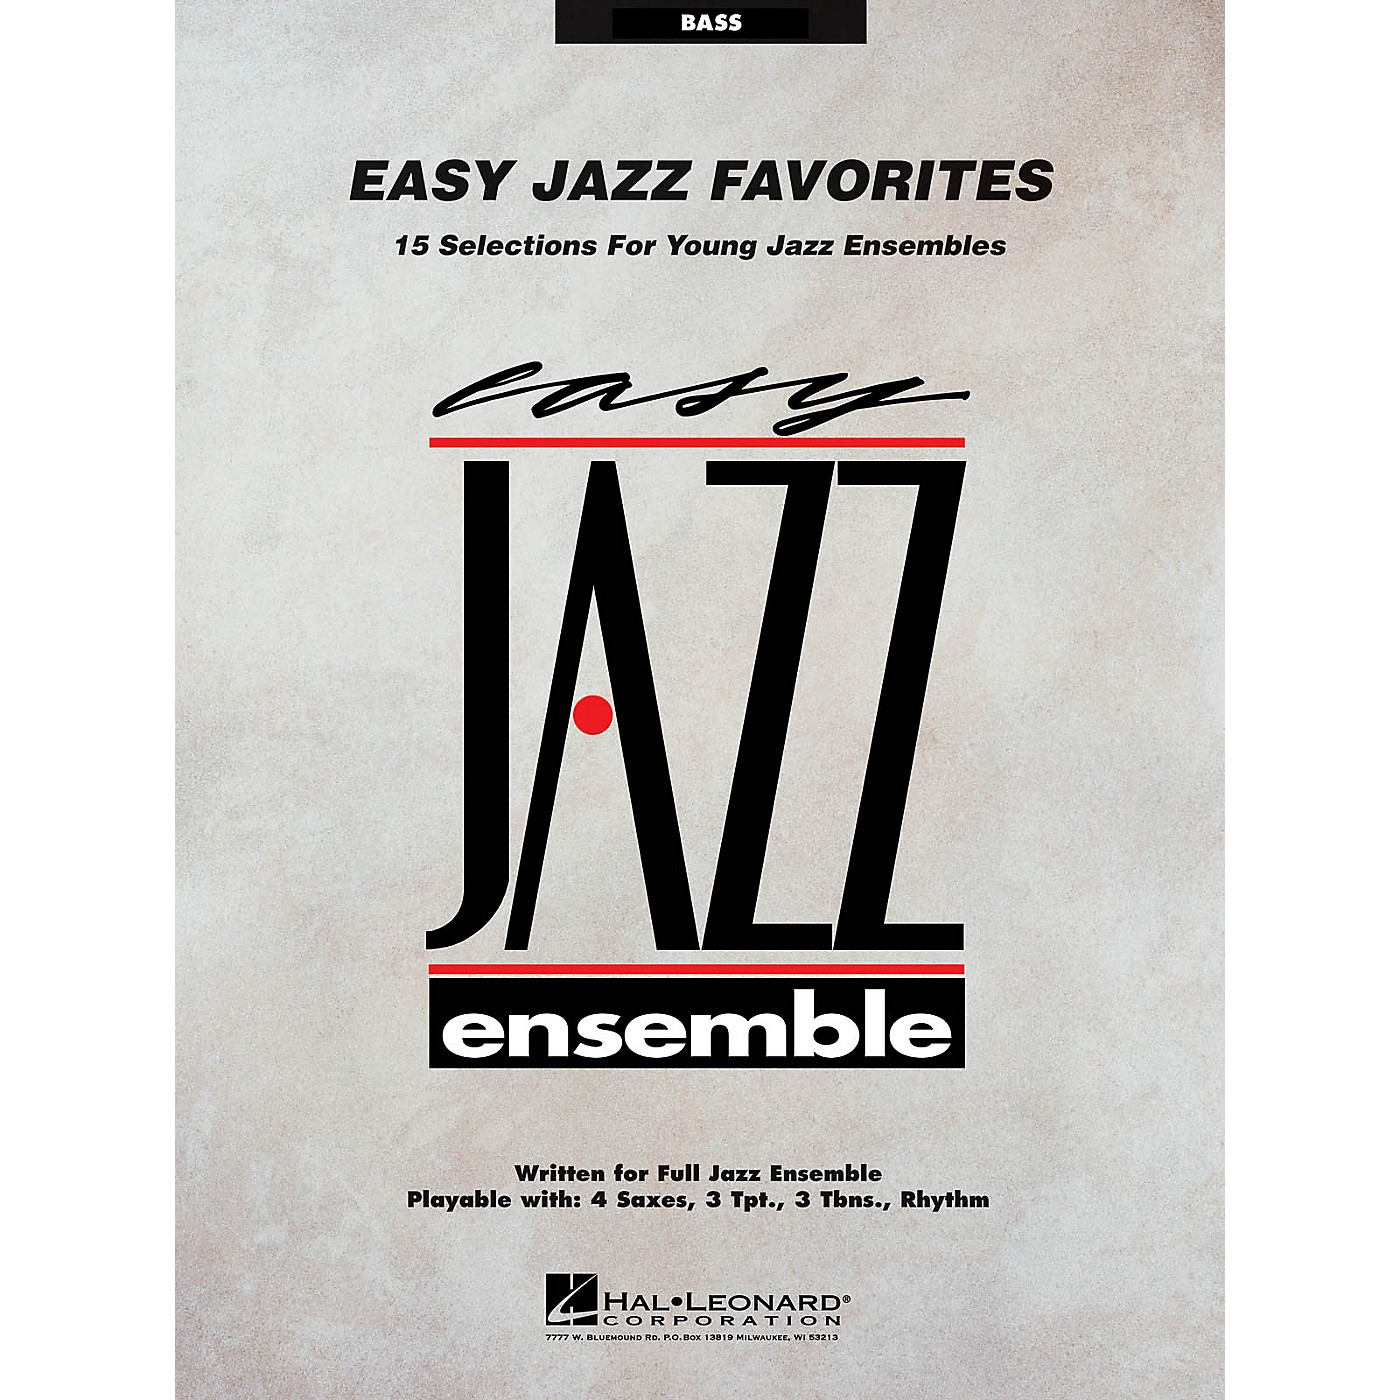 Hal Leonard Easy Jazz Favorites - Bass Jazz Band Level 2 Composed by Various thumbnail